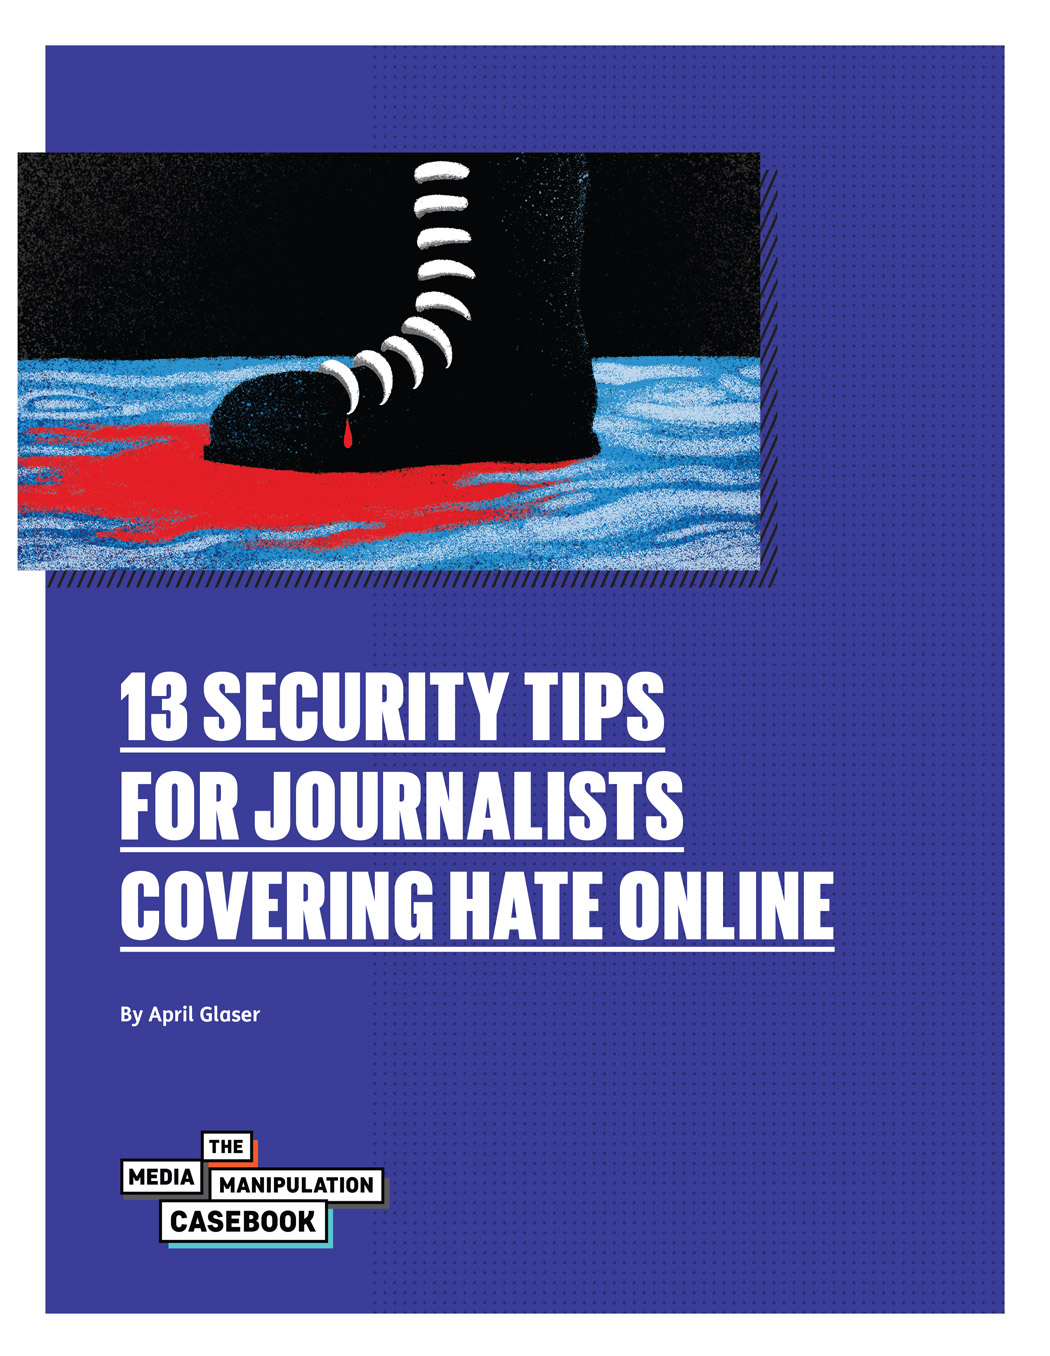 13 Security Tips for Journalists Covering Hate Online